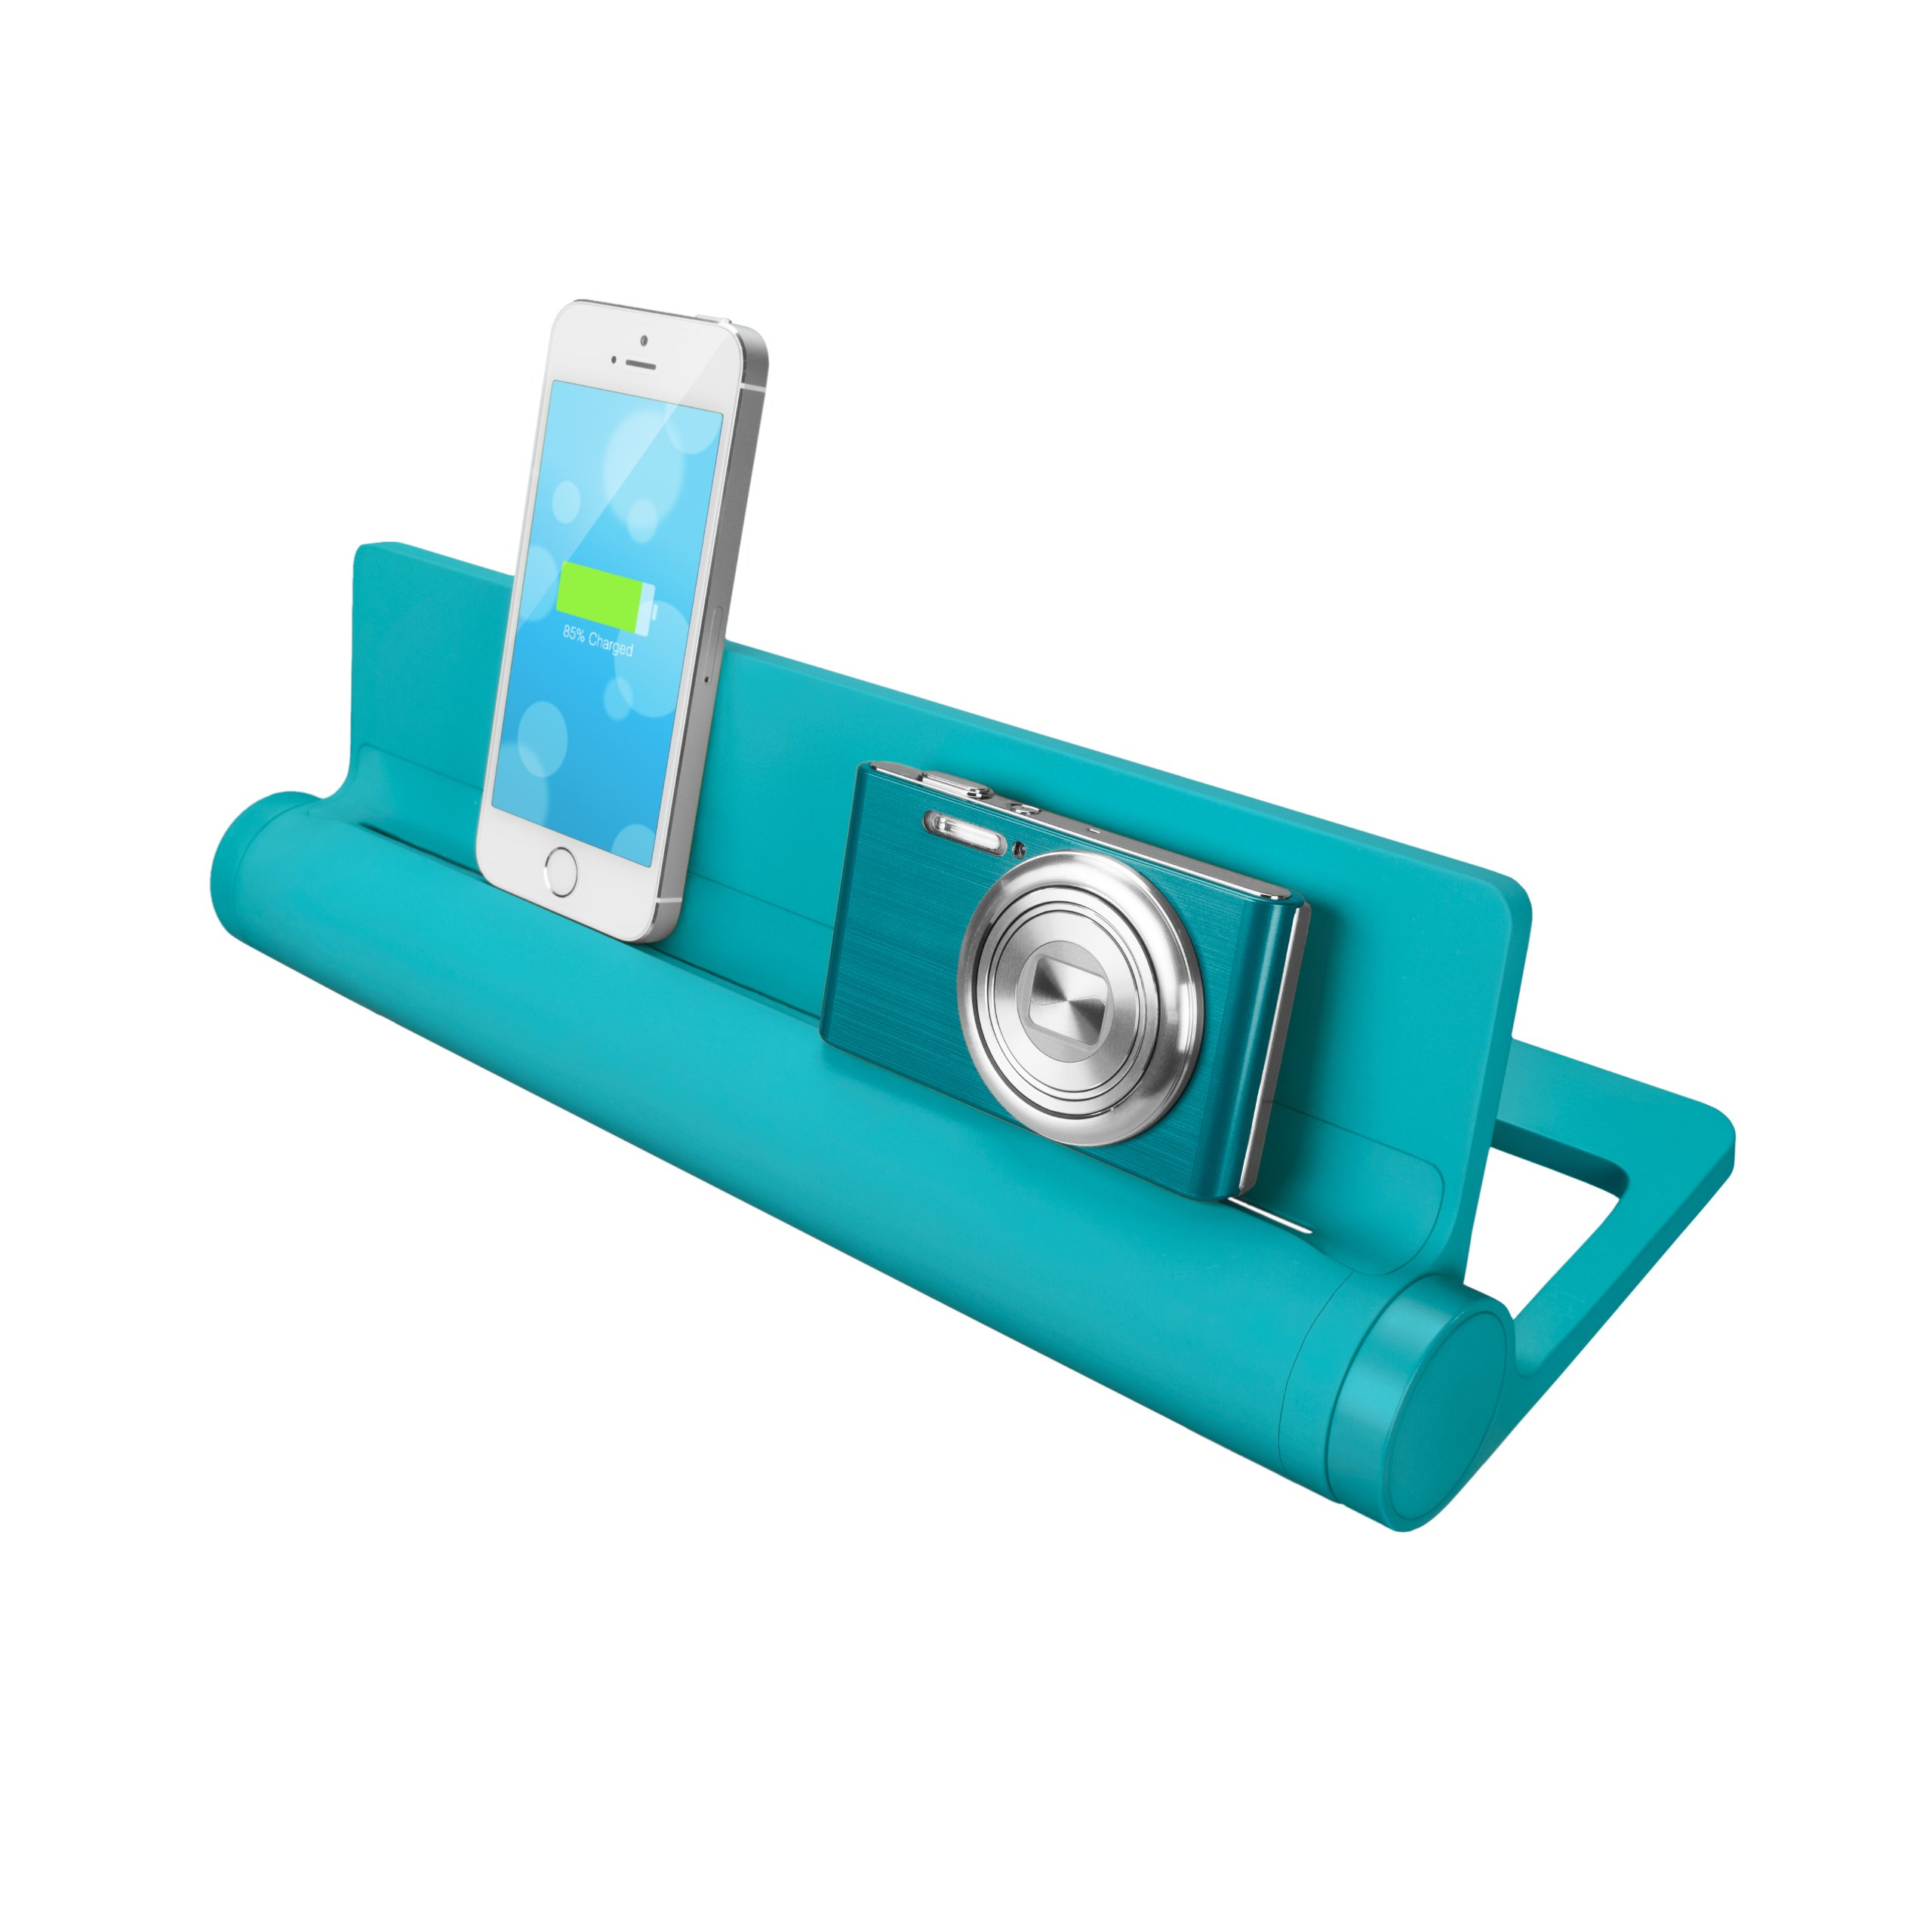 Quirky PCVG3-TL01 Converge Universal USB Docking Station, Teal by Quirky